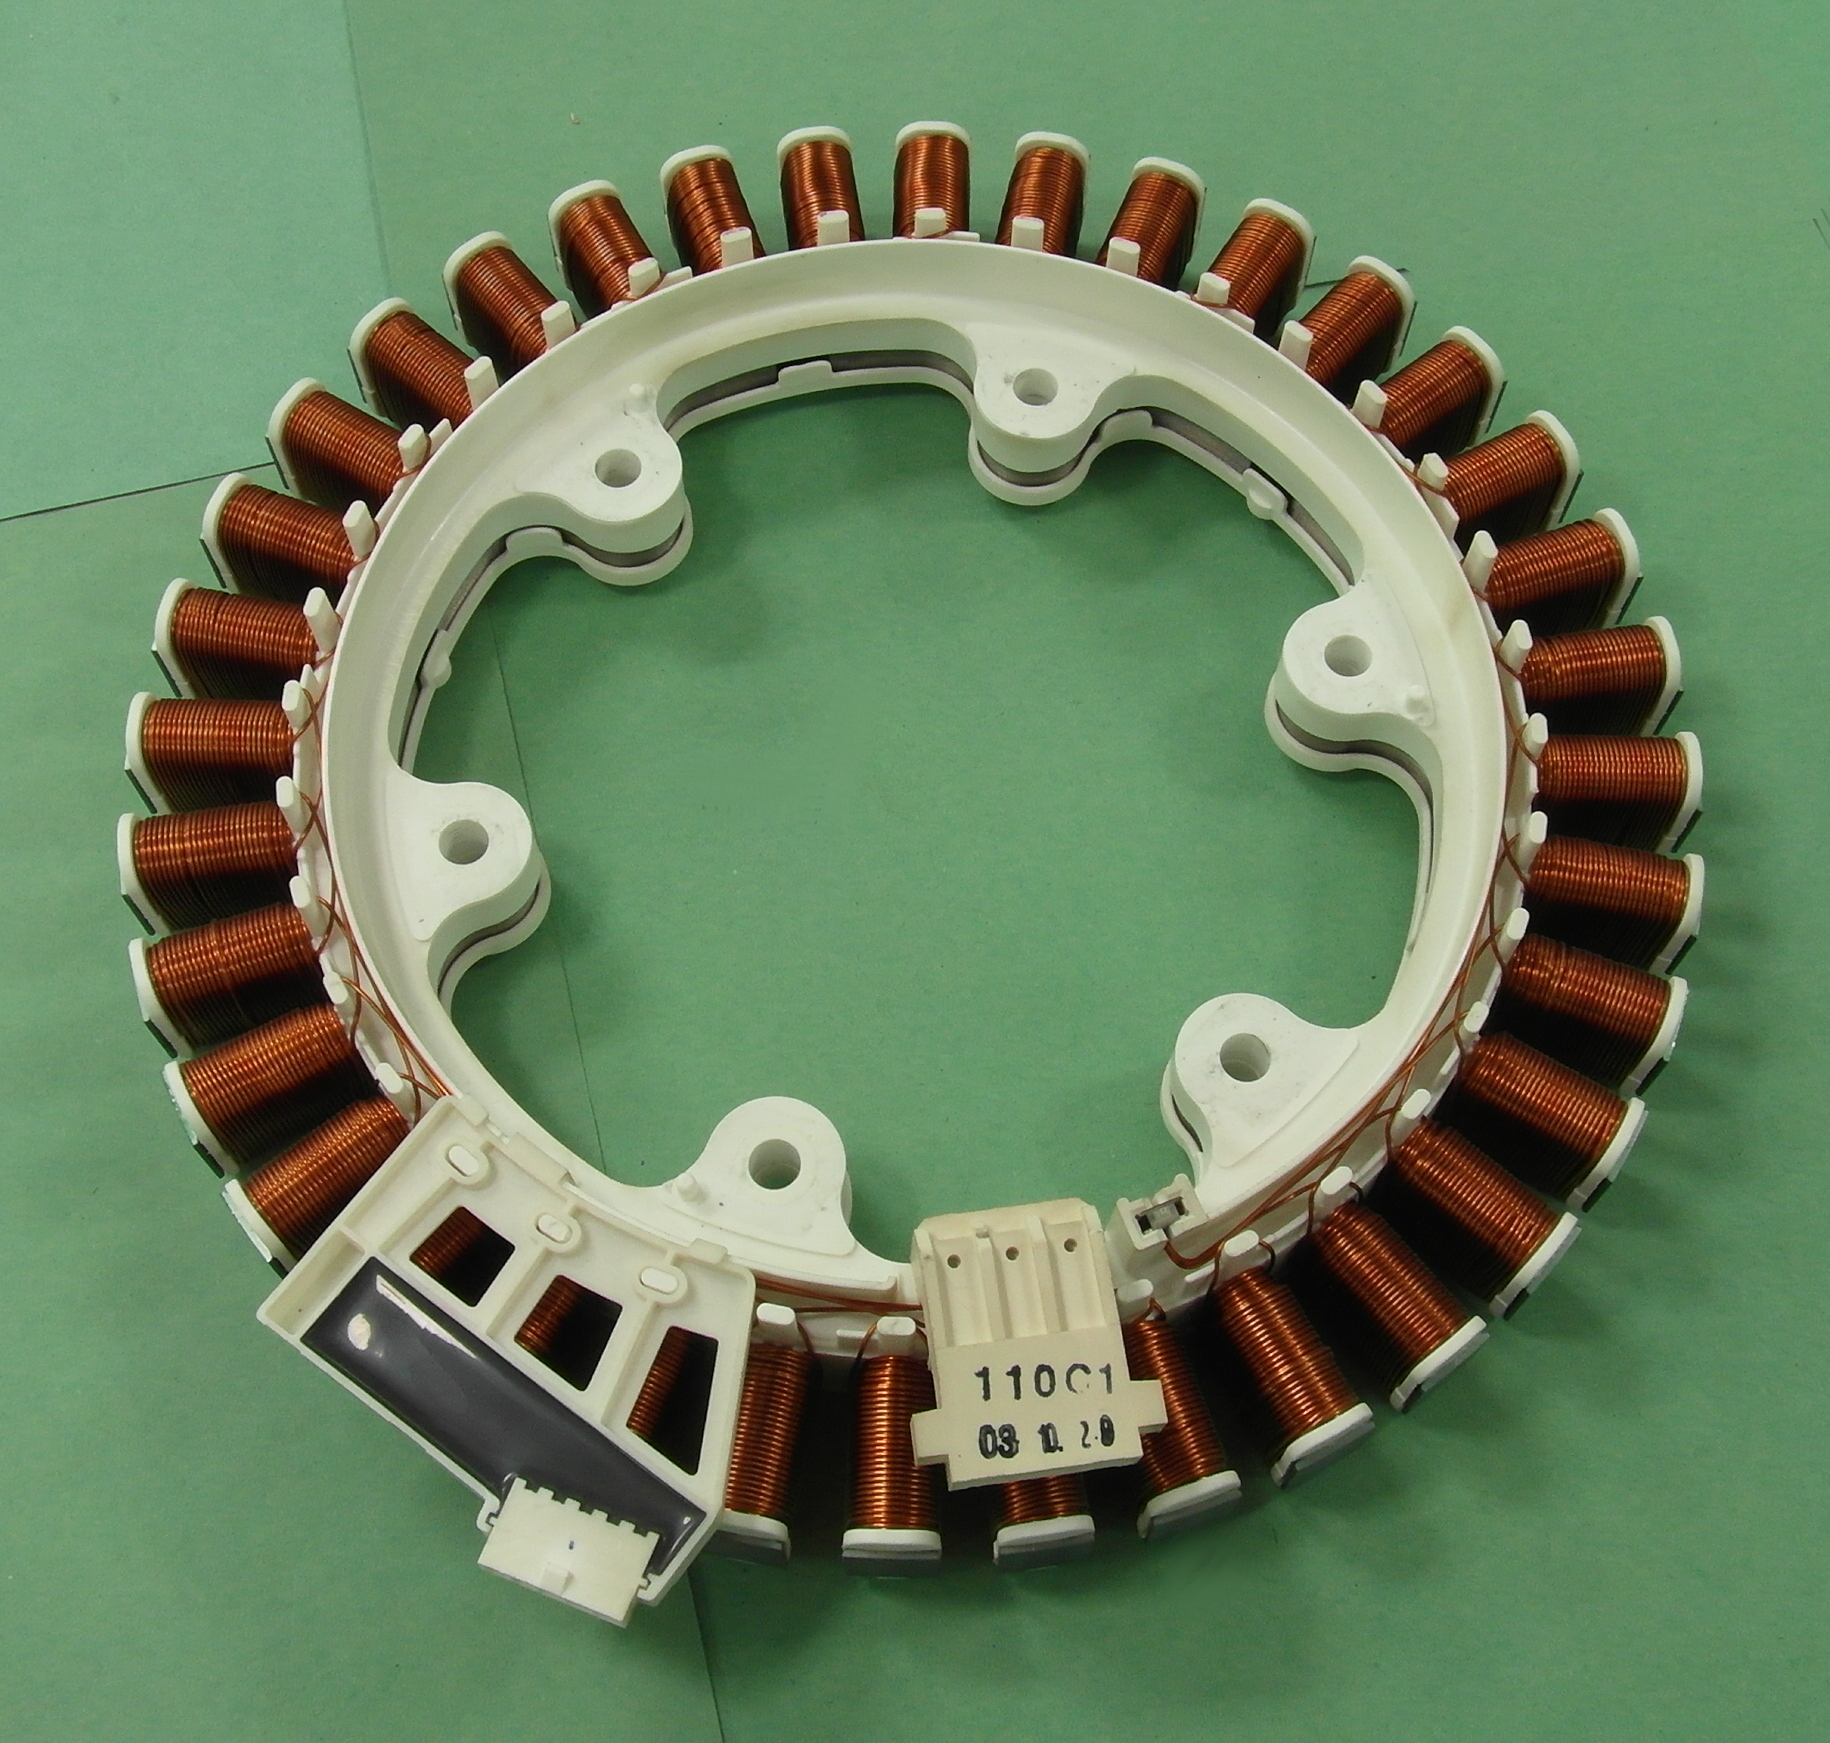 Lg wm 13220fd washing machine direct drive motor stator ebay for Lg direct drive motor